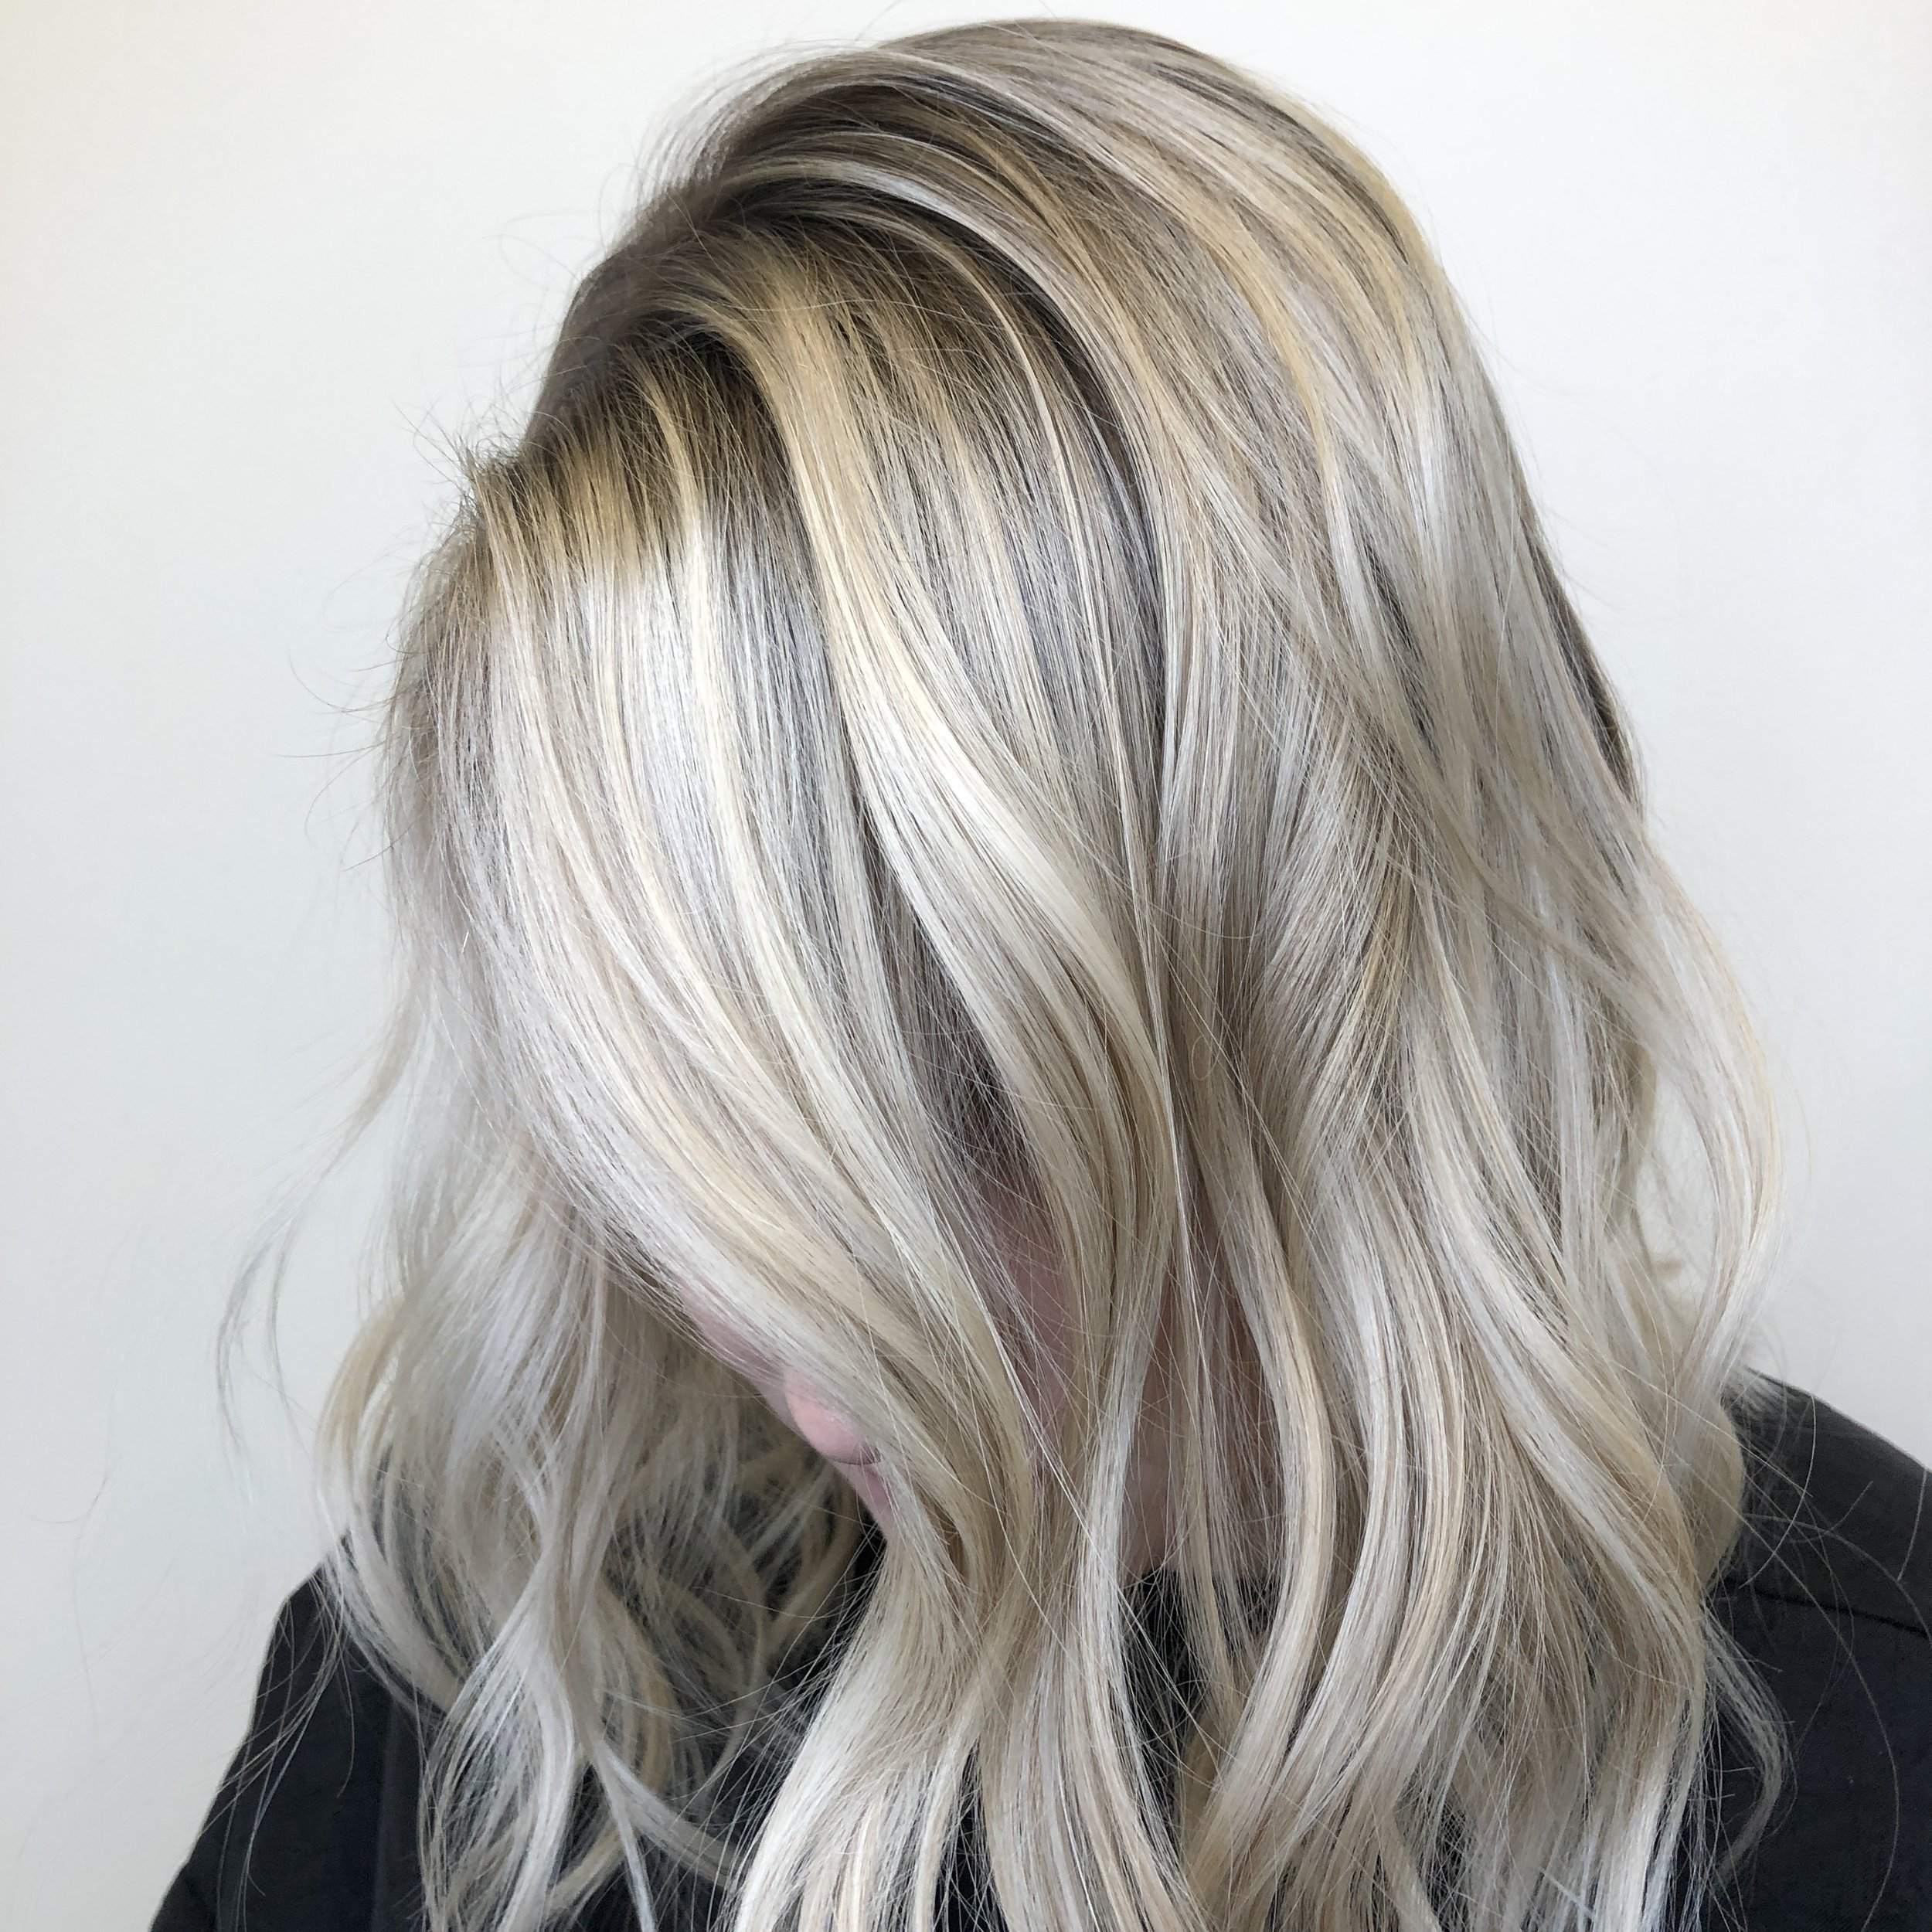 Contrasting Roots - Are you looking for a very low maintenance color? Well you're in luck. This lived in, carefree color is perfect for less trips to the salon. Adding a subtly darker glaze to your root after lightening your hair will give you a rooted look when you leave the salon. As your hair grows out and your root glaze fades,your regrowth will blend in perfectly giving you the same look for weeks.